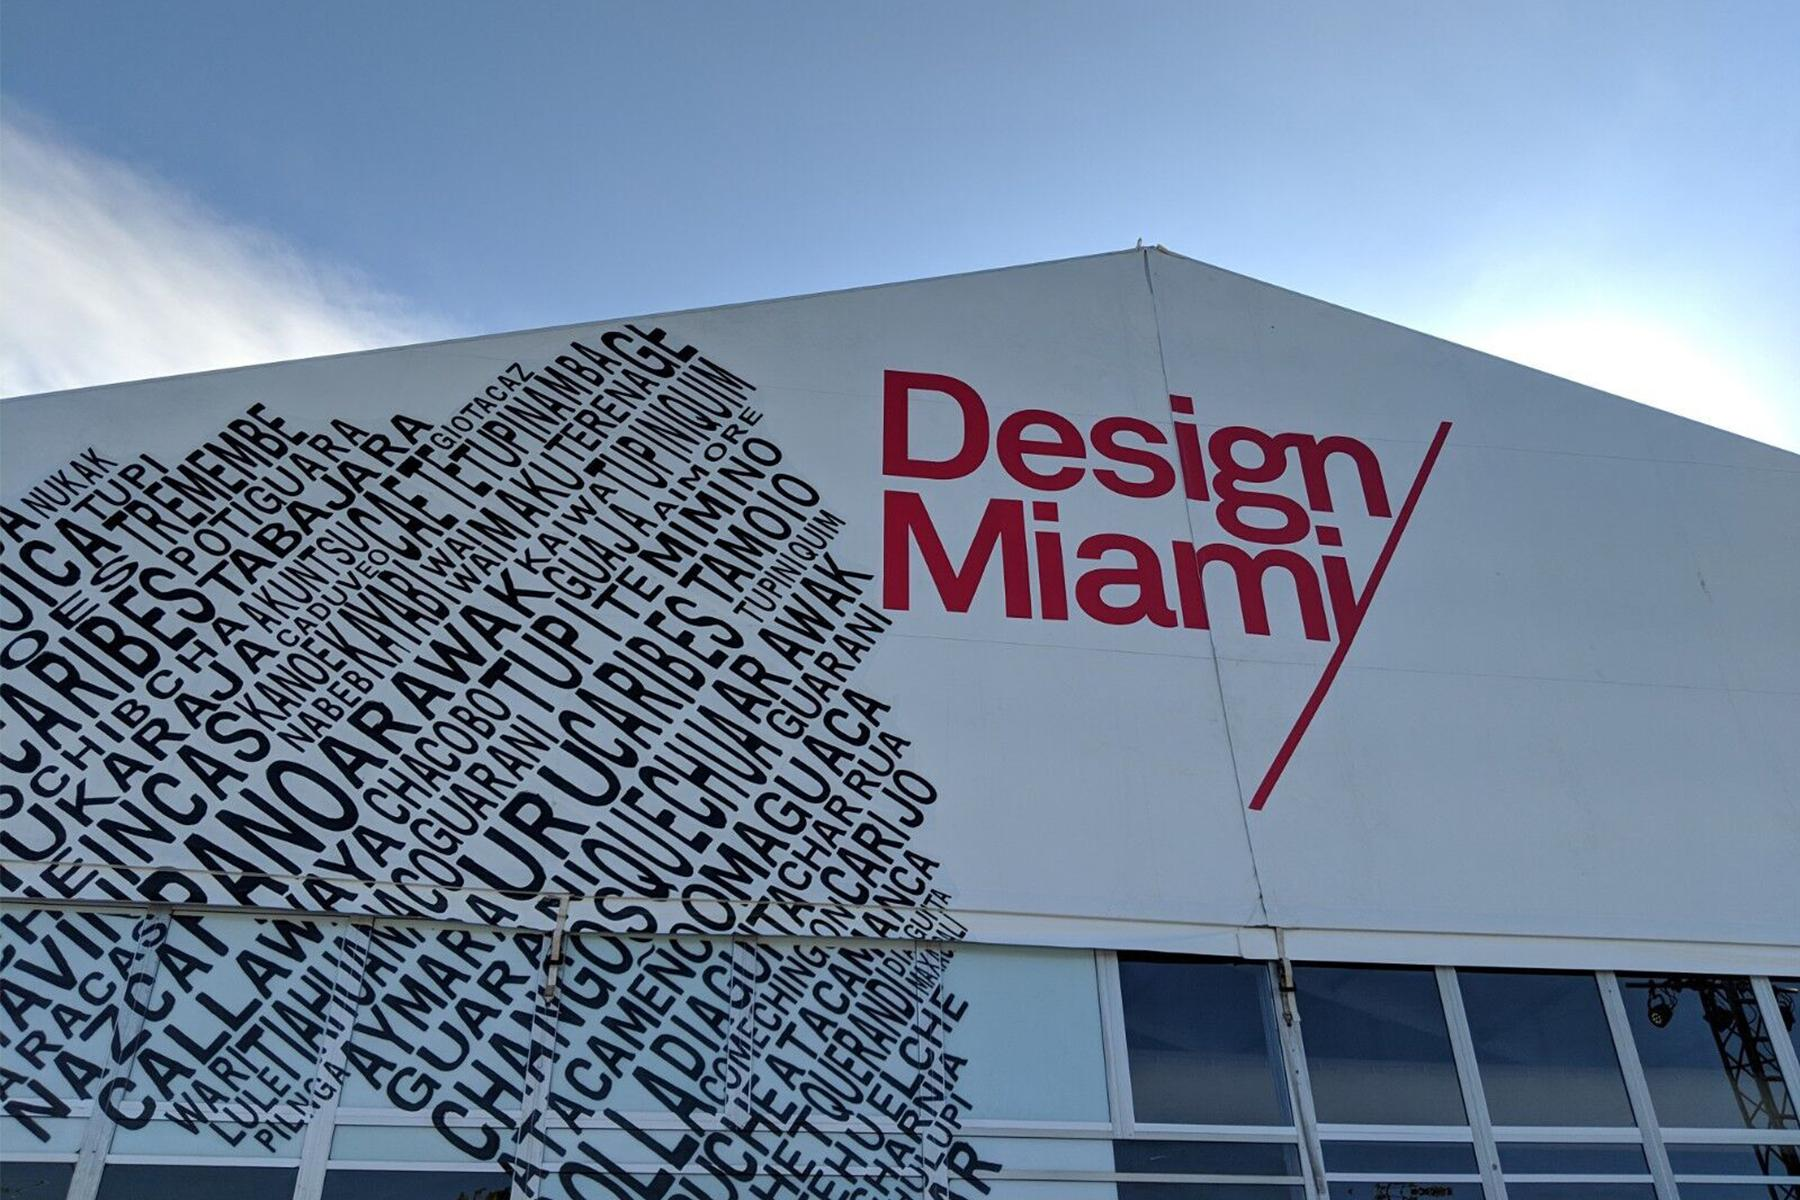 Art Basel, Design Miami: